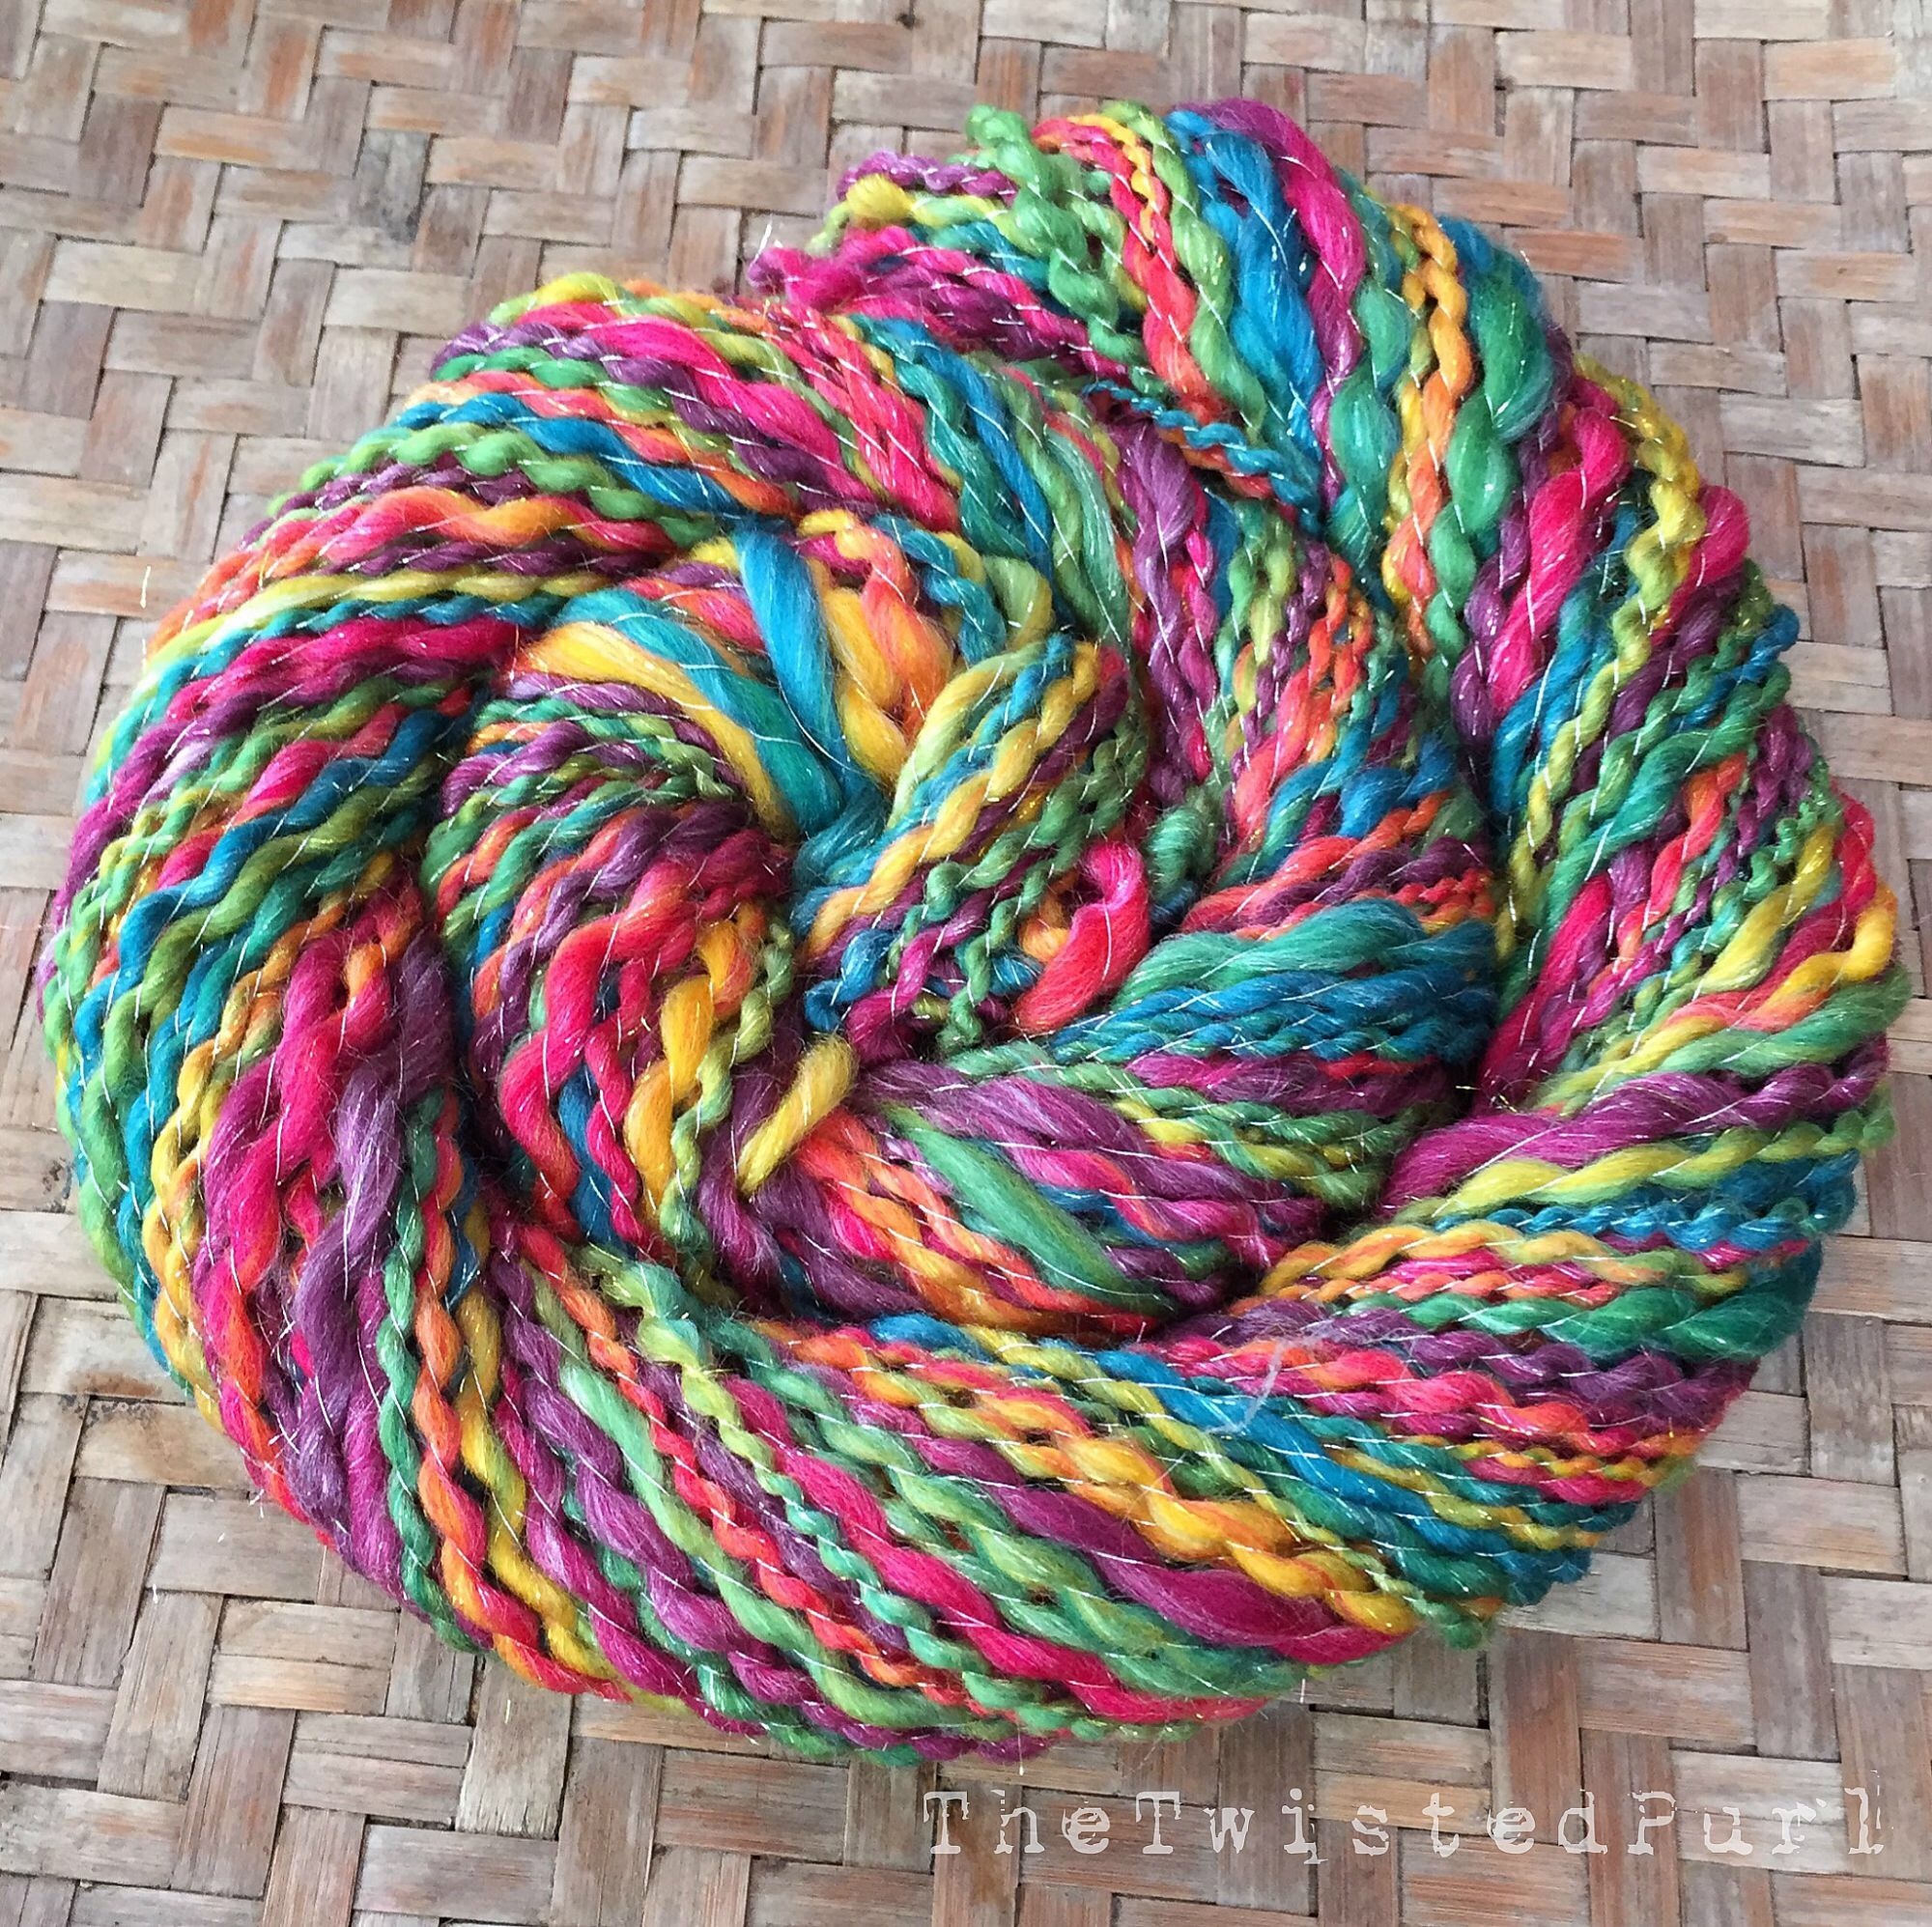 Handspun Yarn made by The Twisted Purl